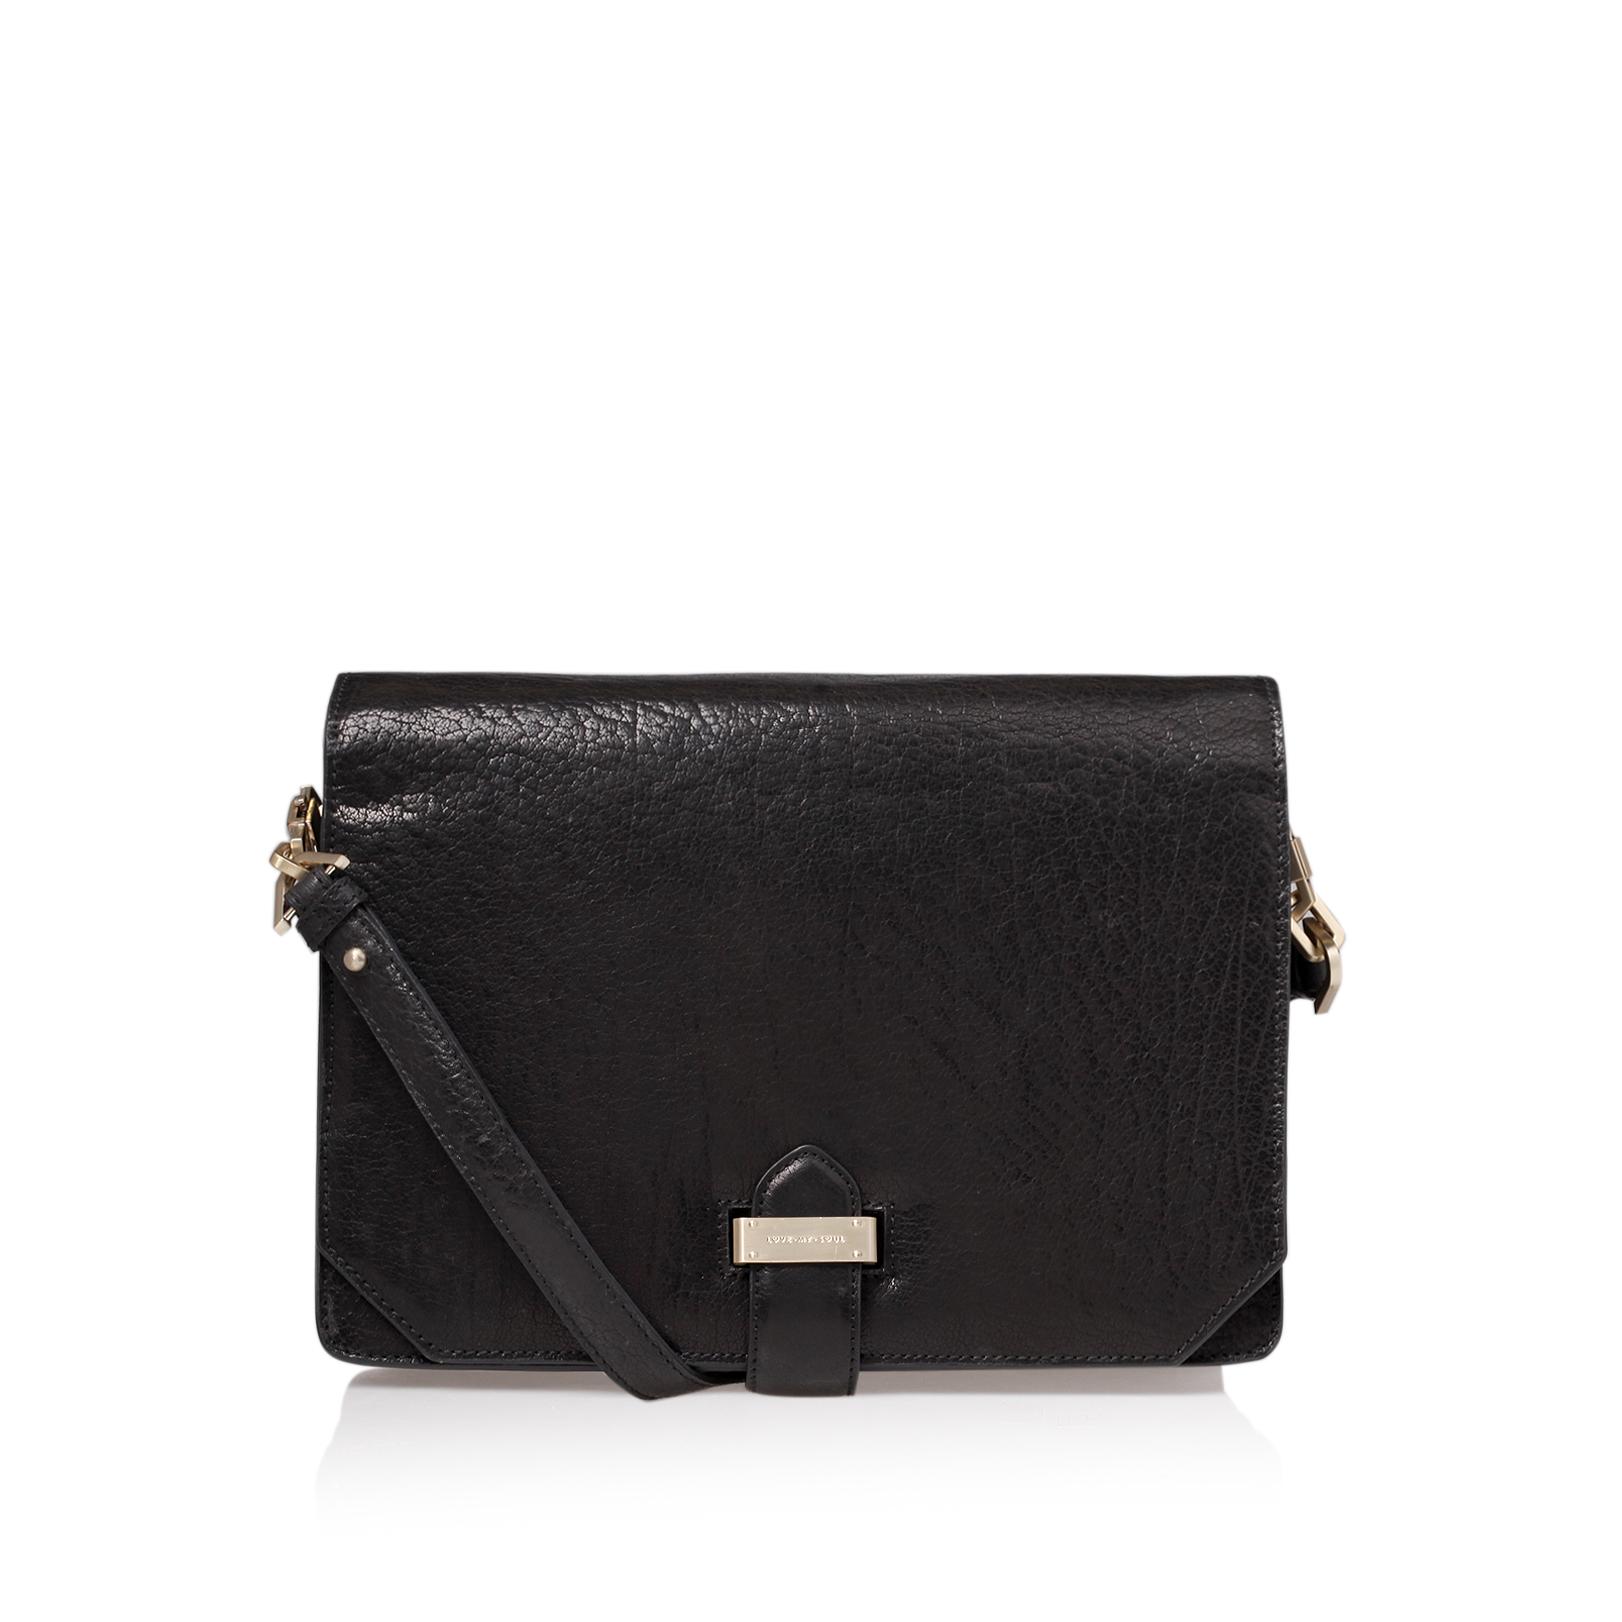 SASHA LEATHER BAG